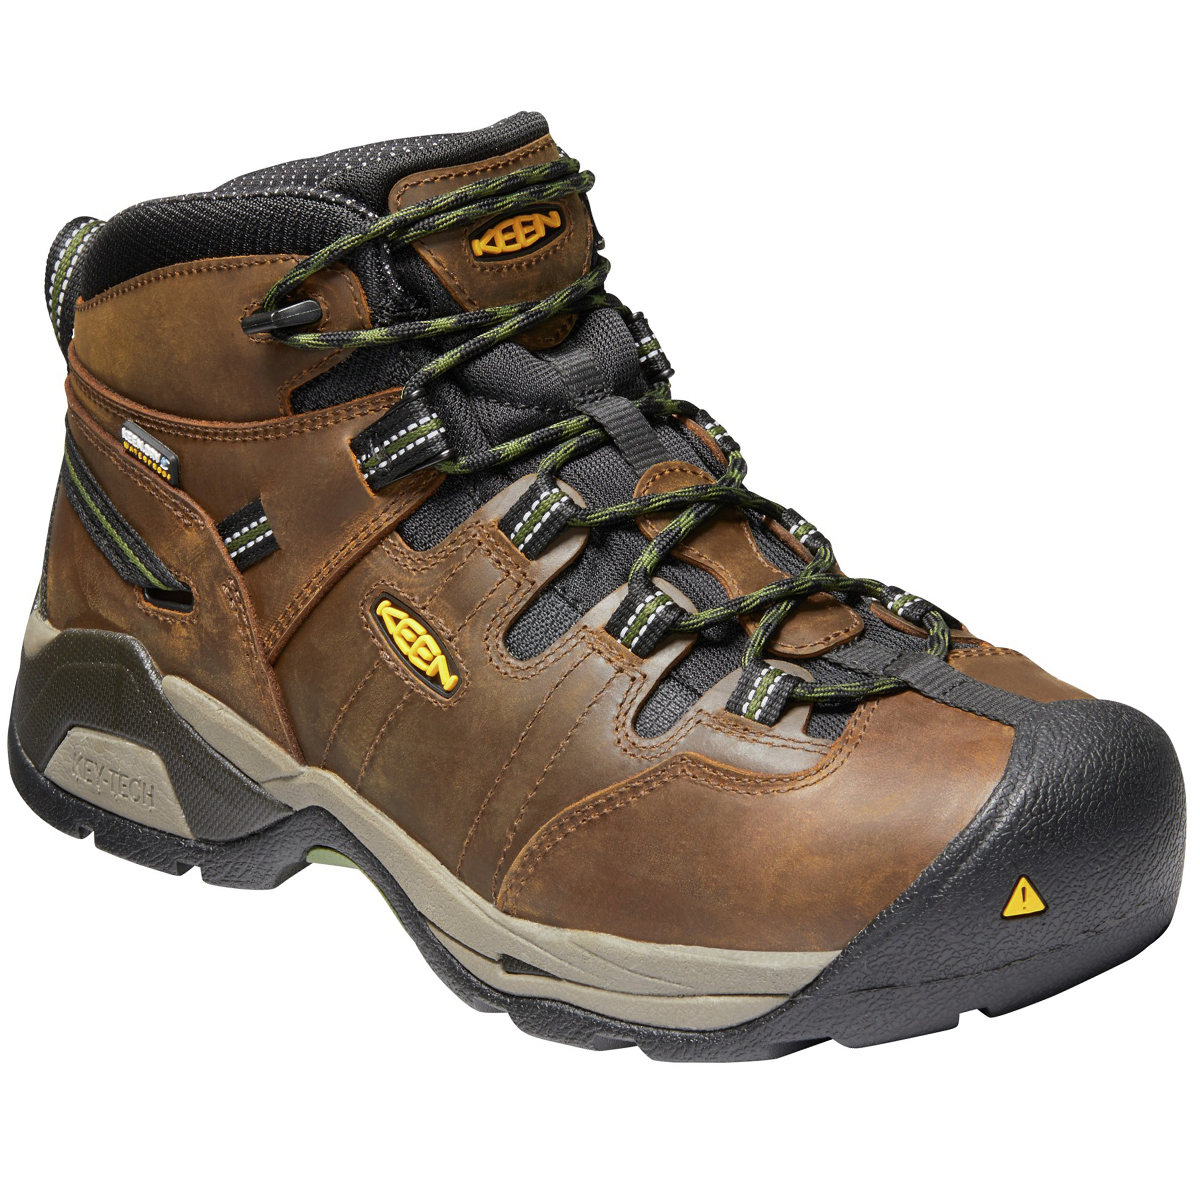 Keen Men's Detroit Xt Mid Steel Toe Waterproof Work Boots - Brown, 10.5